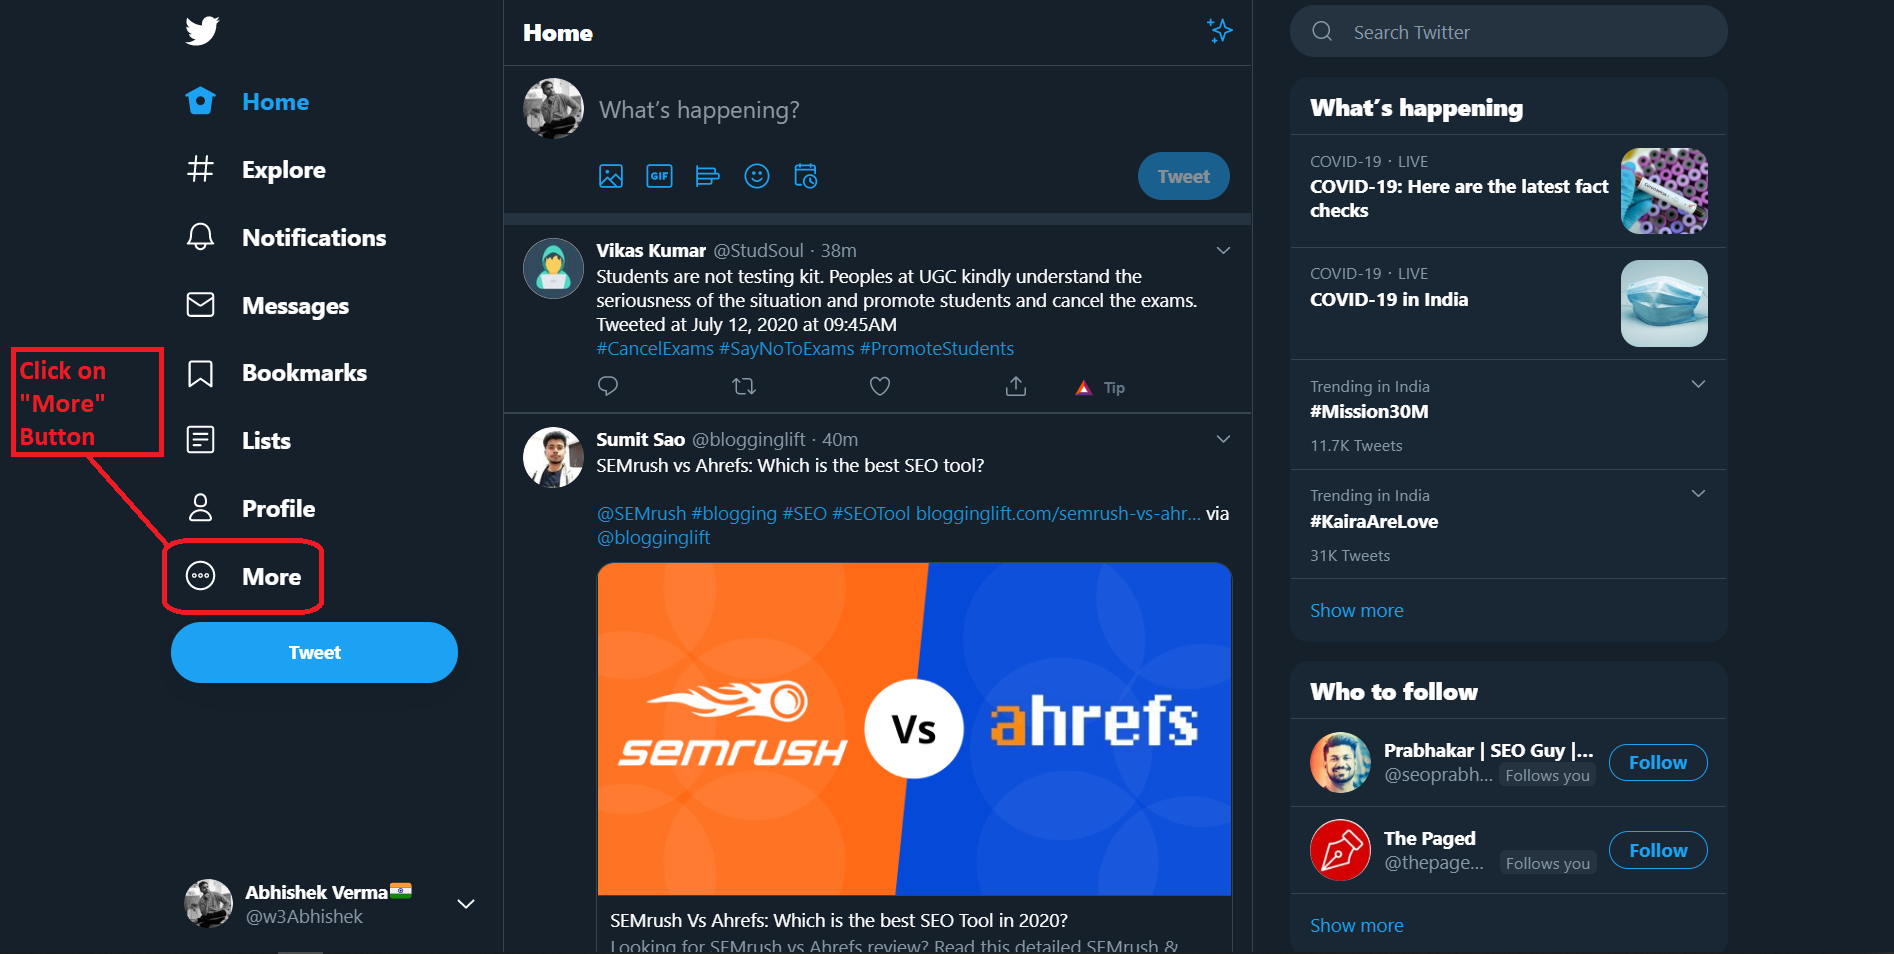 More Options - Recover Deleted Tweets